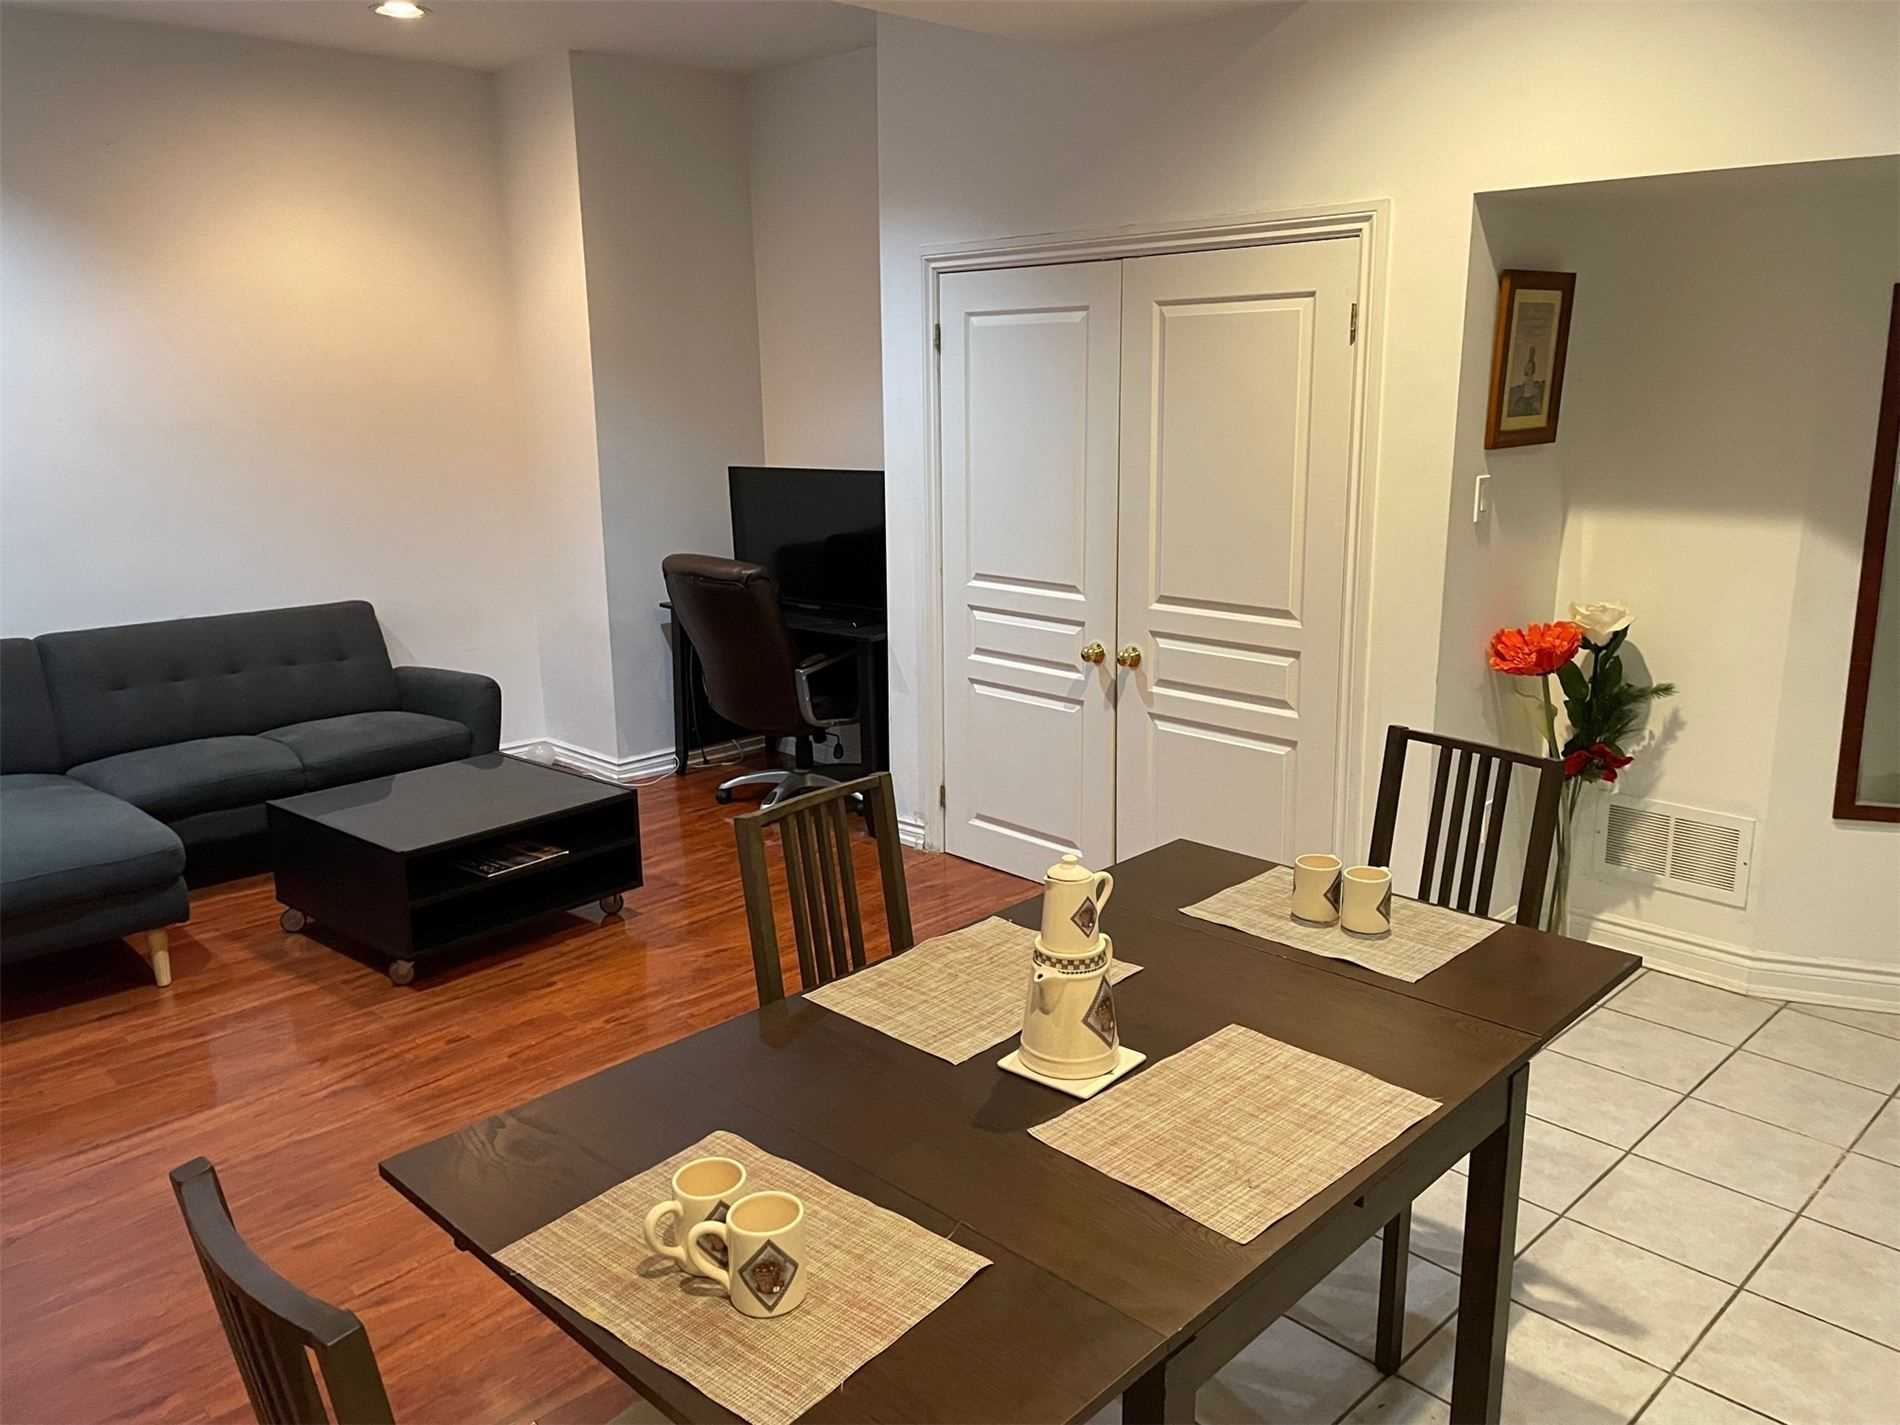 Image 6 of 10 showing inside of 1 Bedroom Detached 2-Storey for Lease at 40 Madawaska Ave, Toronto M2M2P9